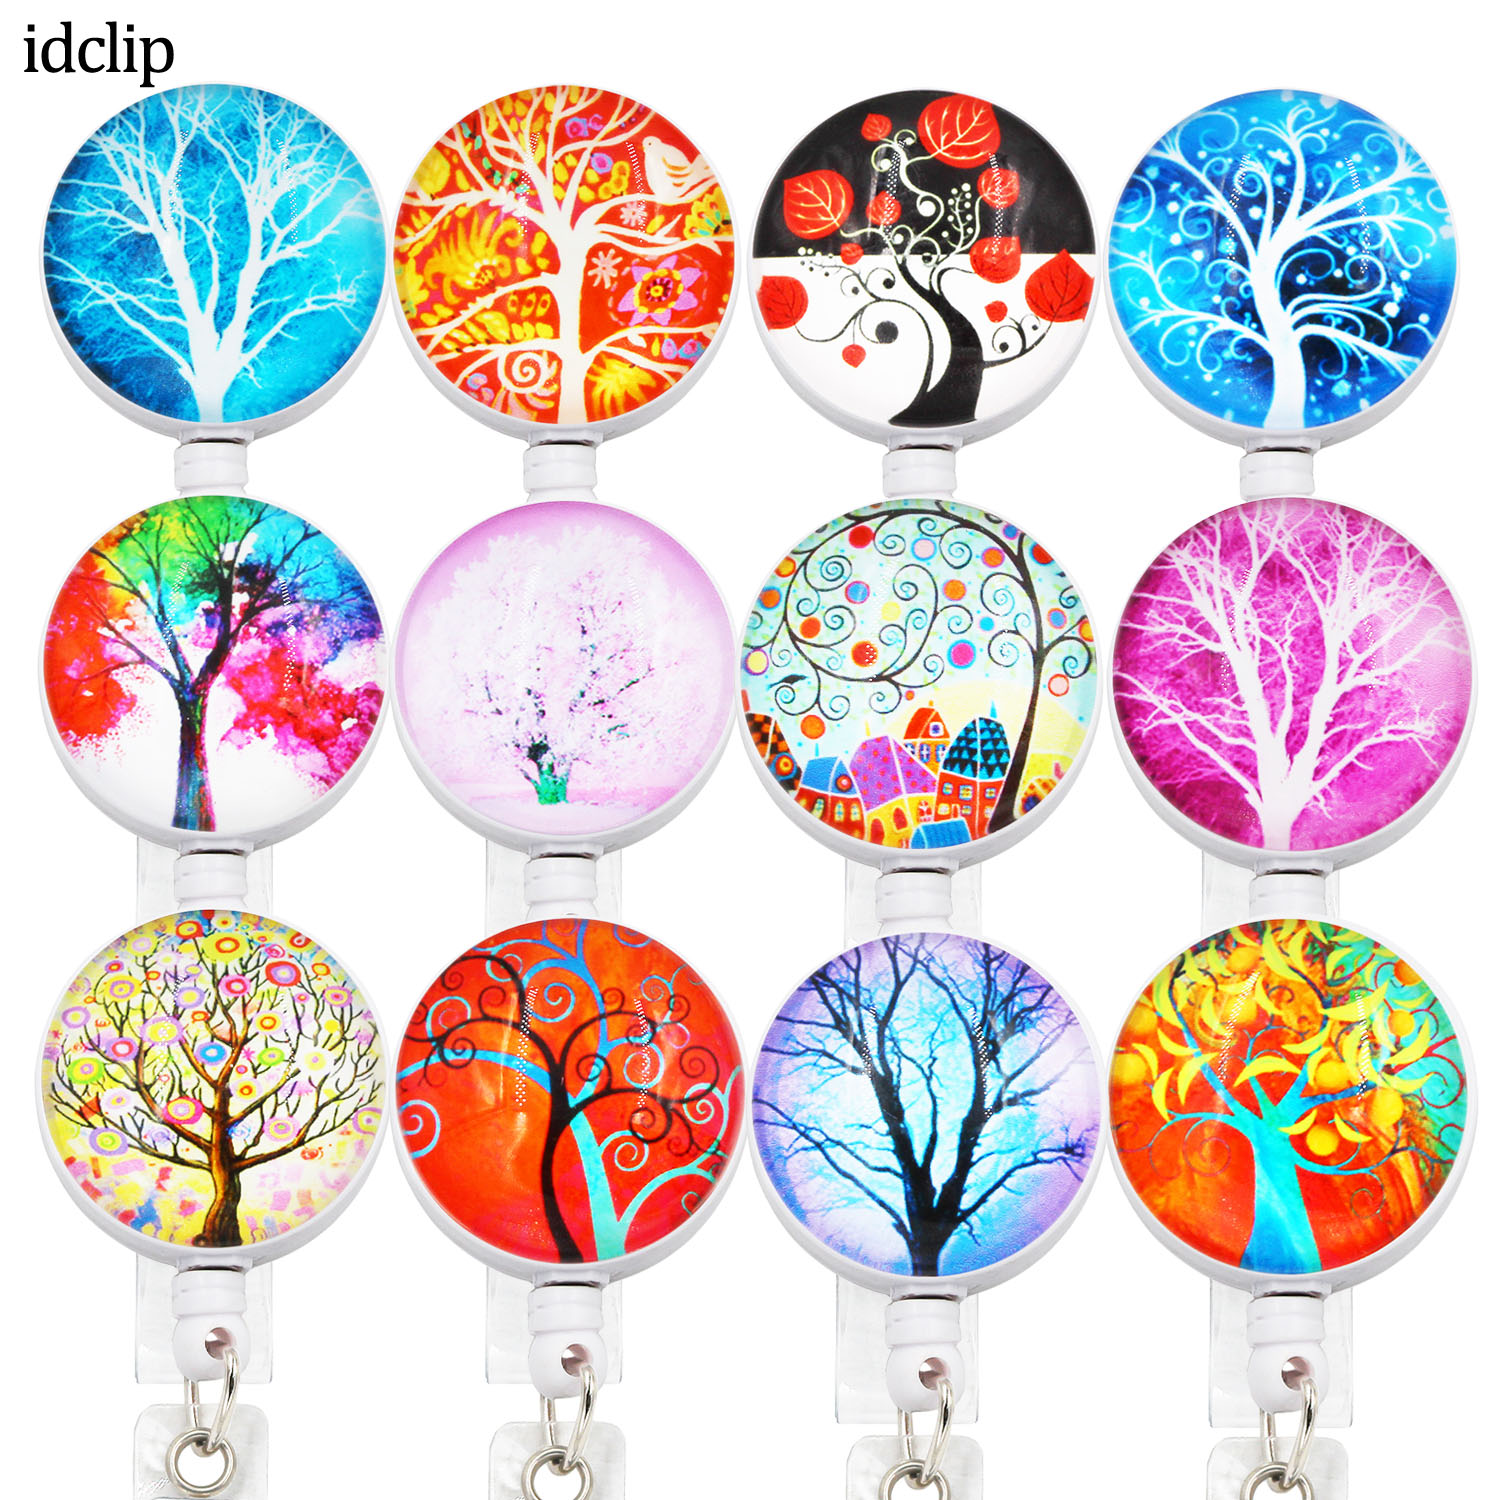 idclip 3D Tree ID Retractable Badge Holder with Alligator Clip Cord